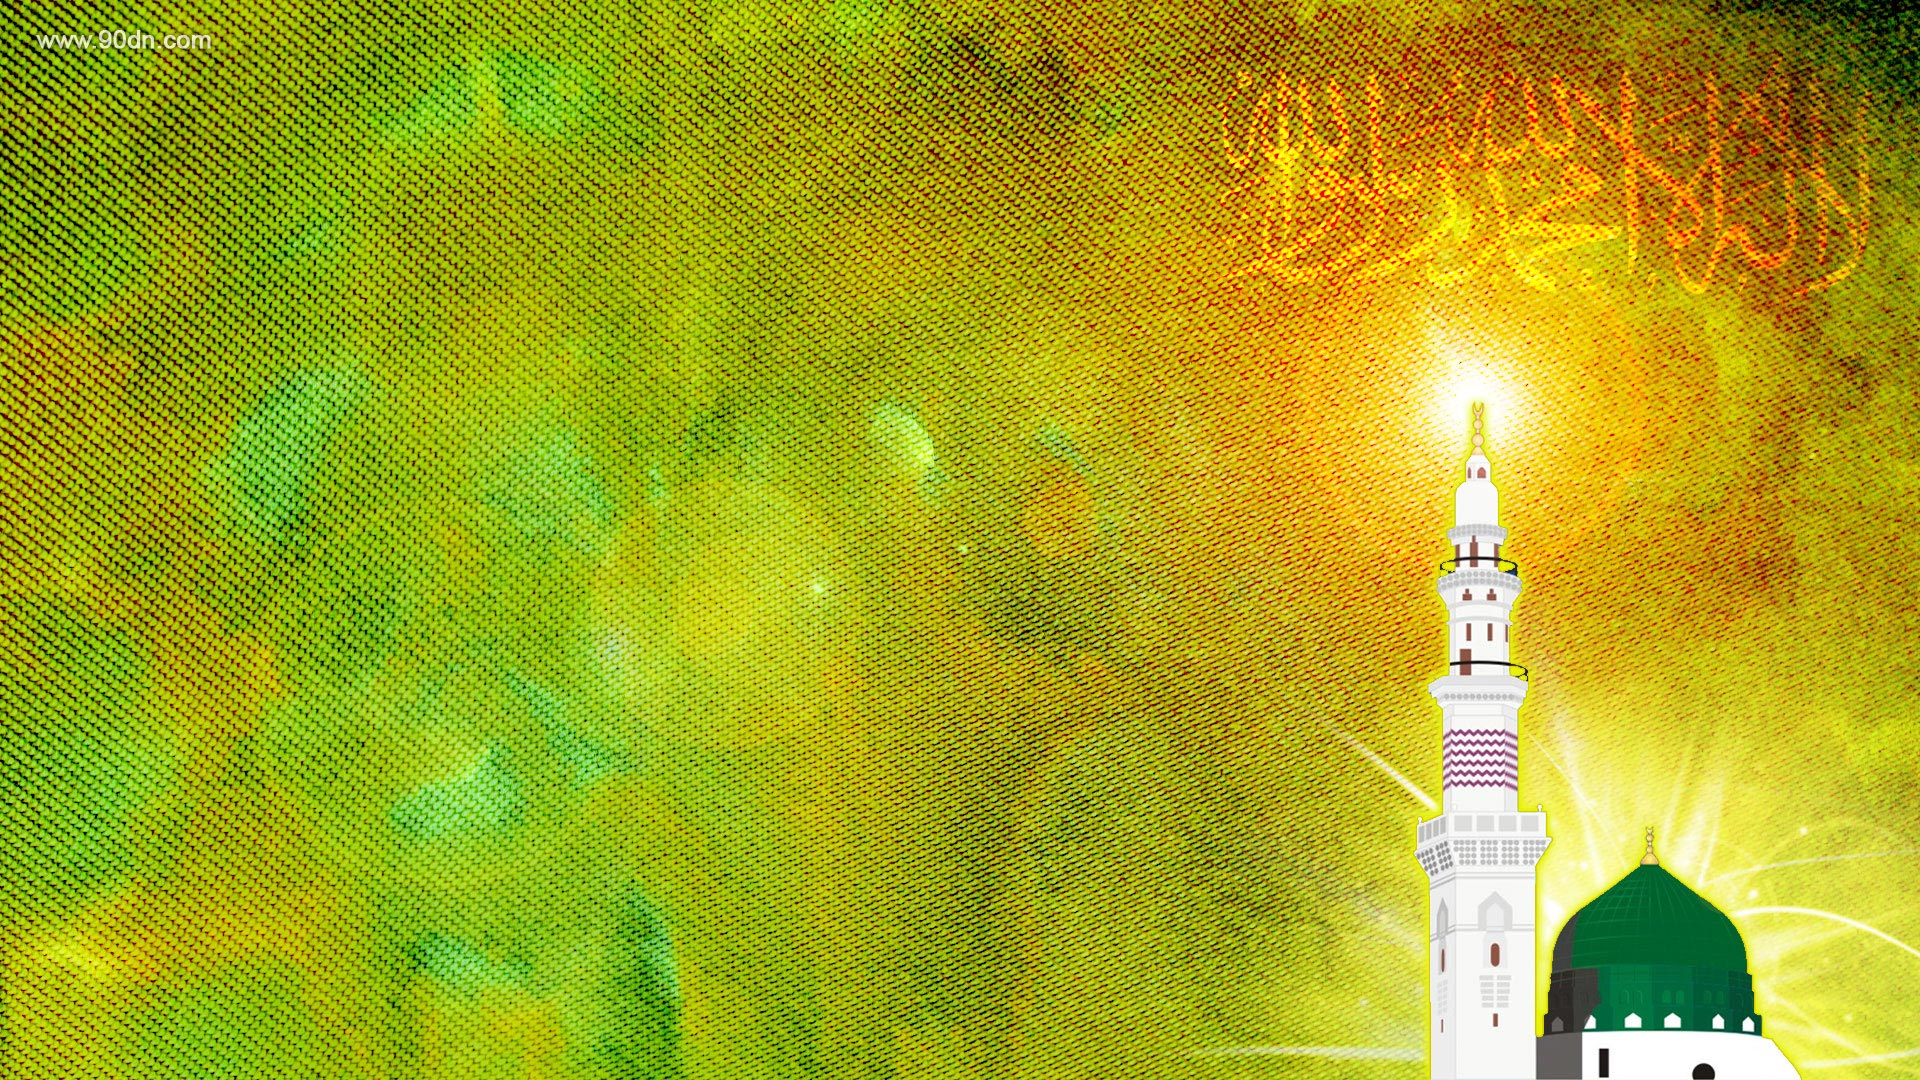 comwp contentuploads201401Islamic Wallpaper Background HDjpg 1920x1080